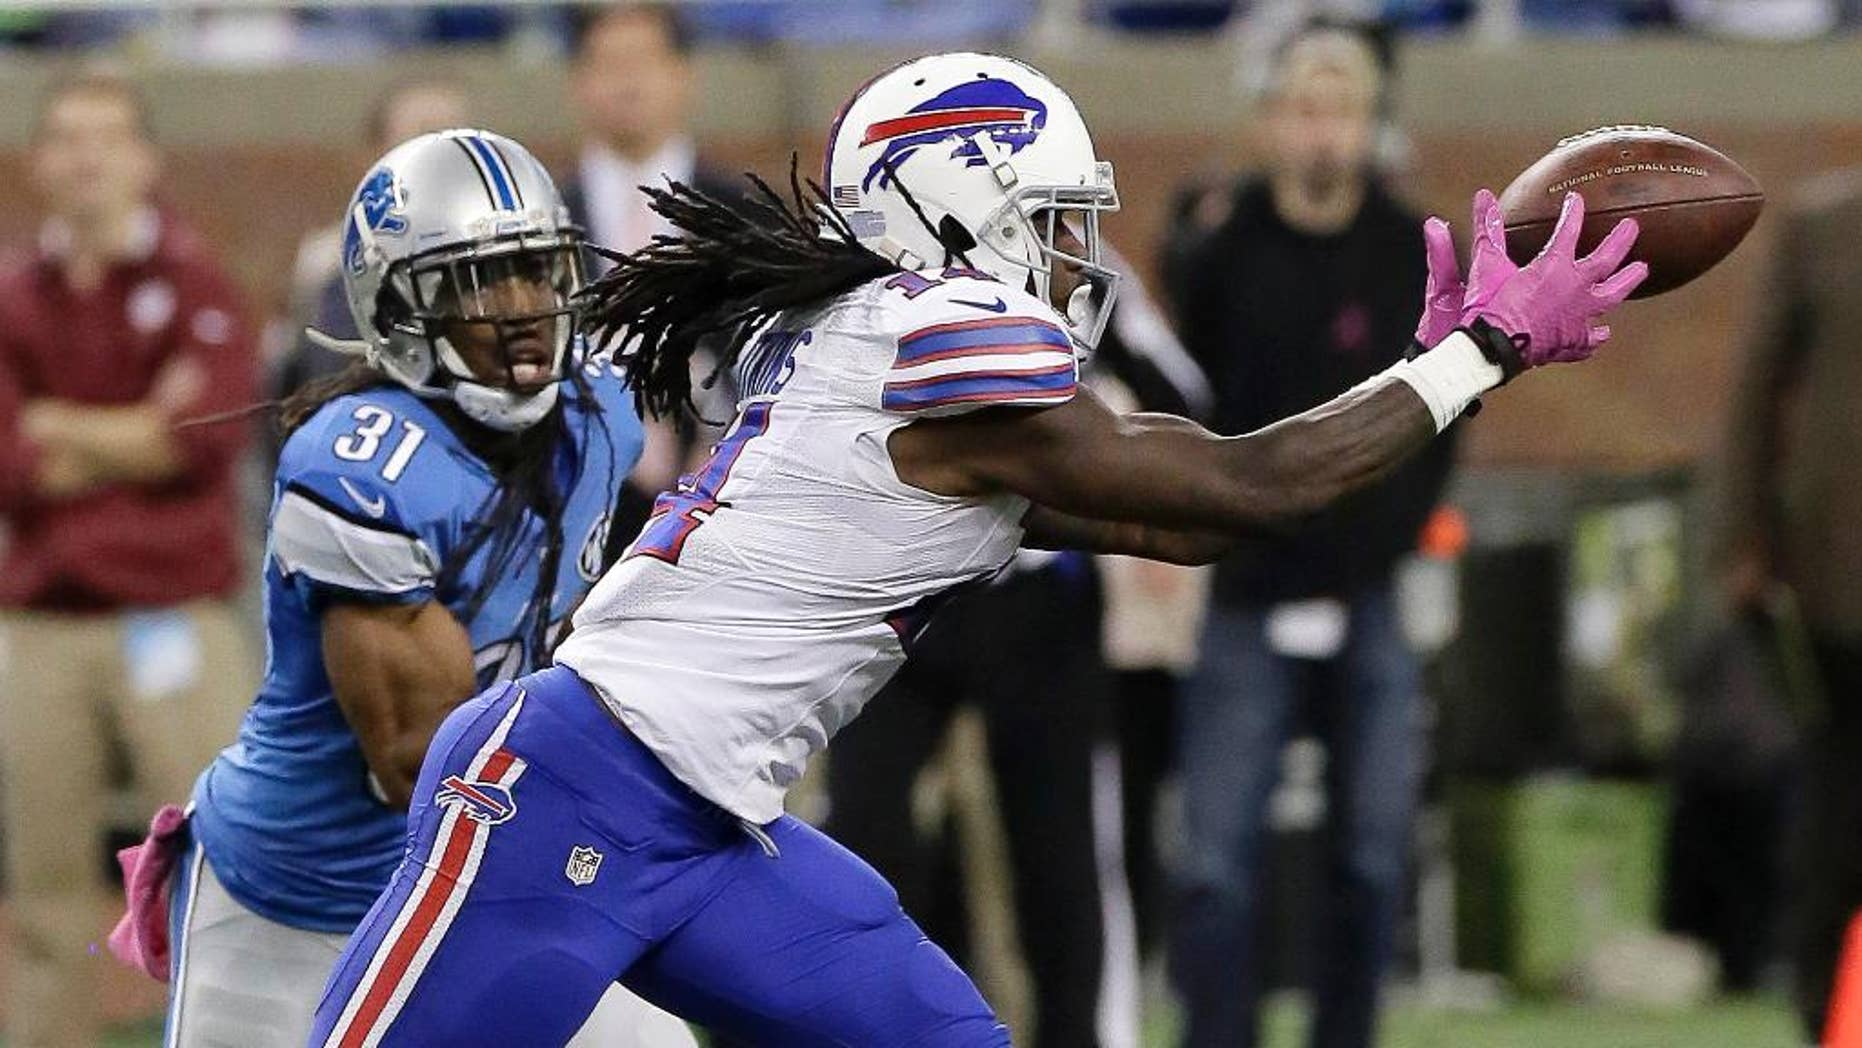 Buffalo Bills wide receiver Sammy Watkins (14) catches a 20-yard pass as Detroit Lions cornerback Rashean Mathis (31) watches in the fourth quarter of an NFL football game Sunday, Oct. 5, 2014, in Detroit. The Bills defeated the Lions 17-14. (AP Photo/Duane Burleson)